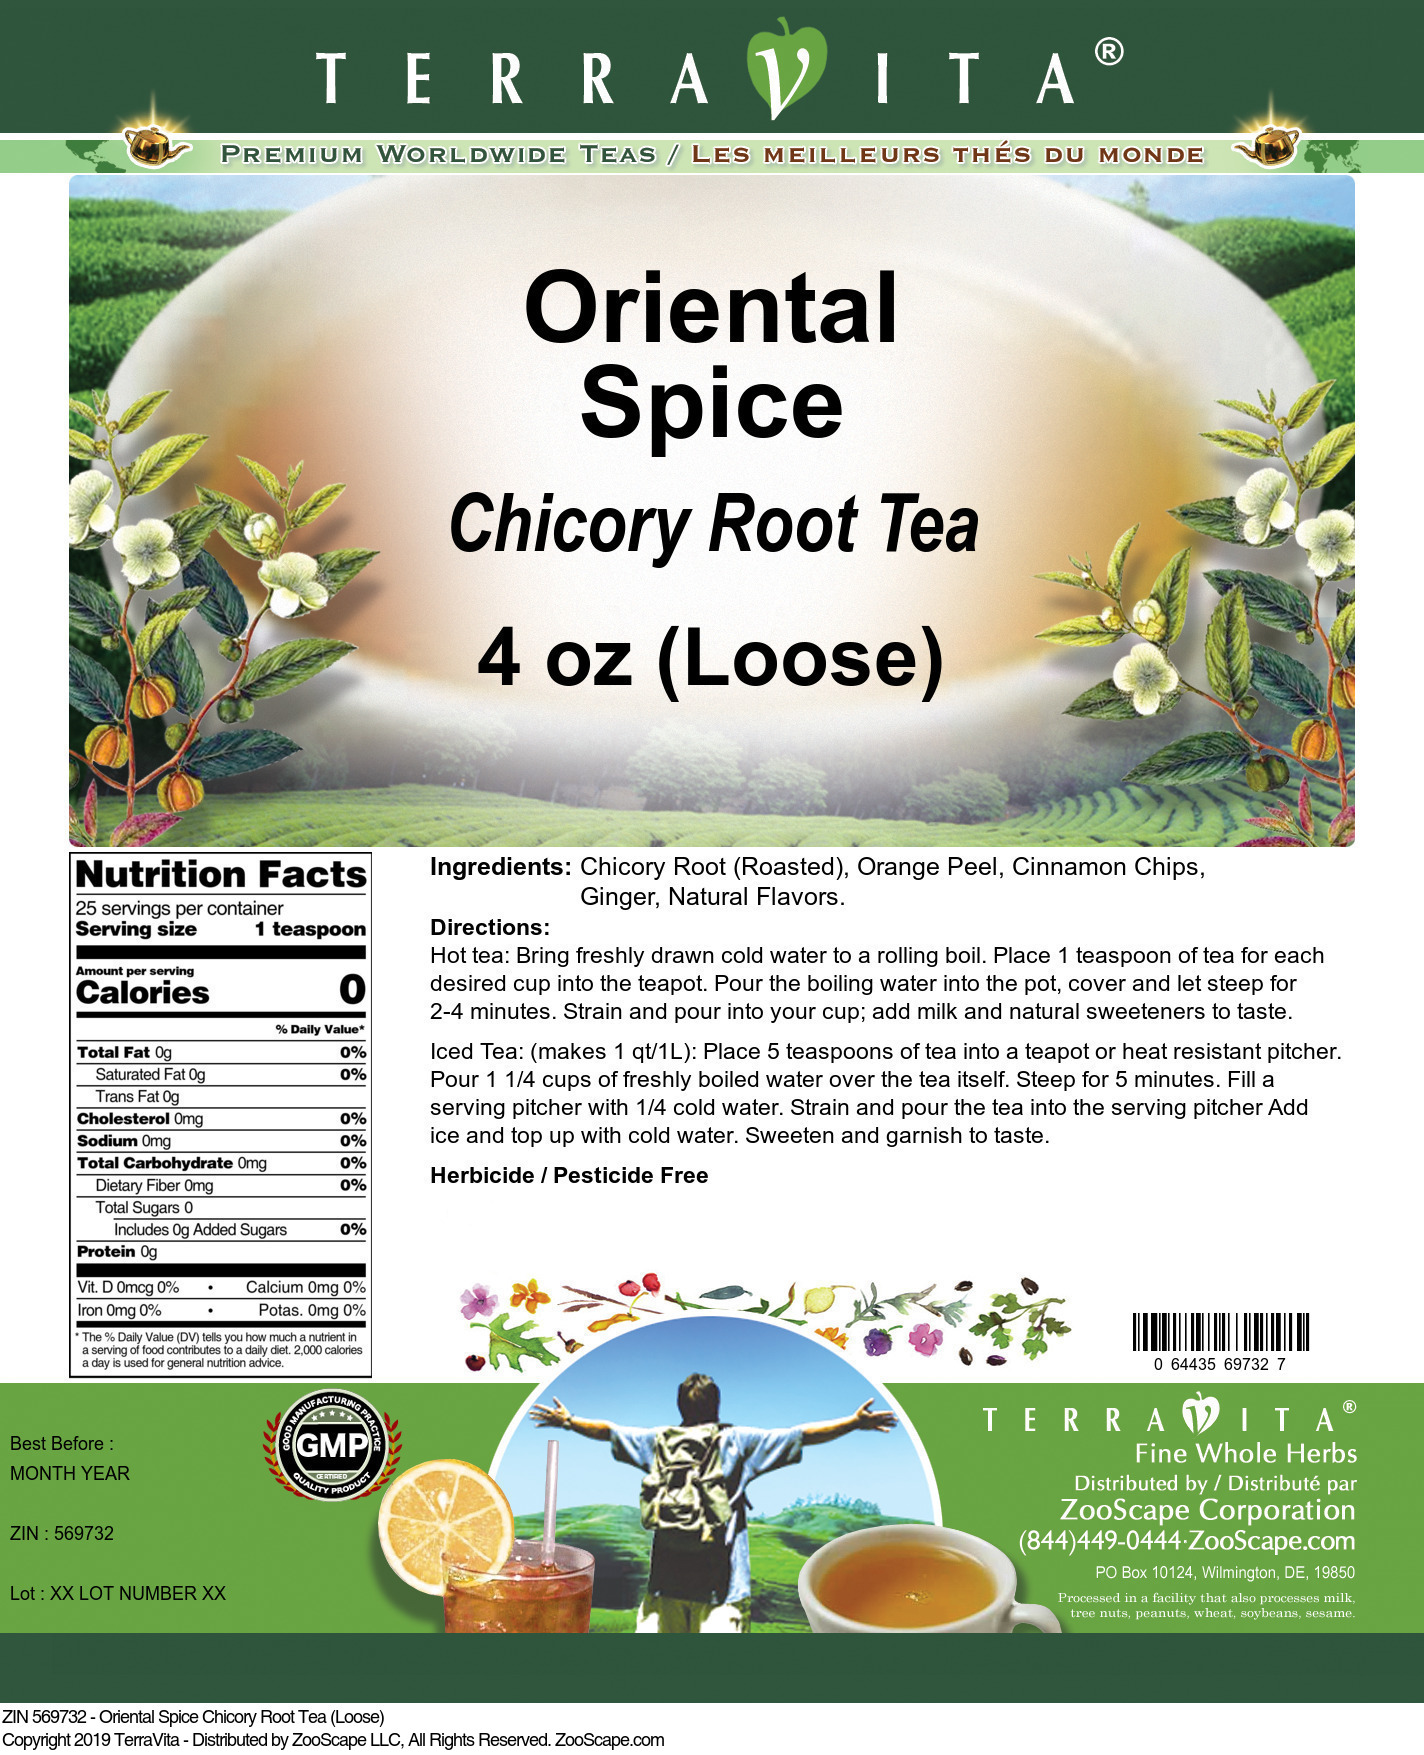 Oriental Spice Chicory Root Tea (Loose)